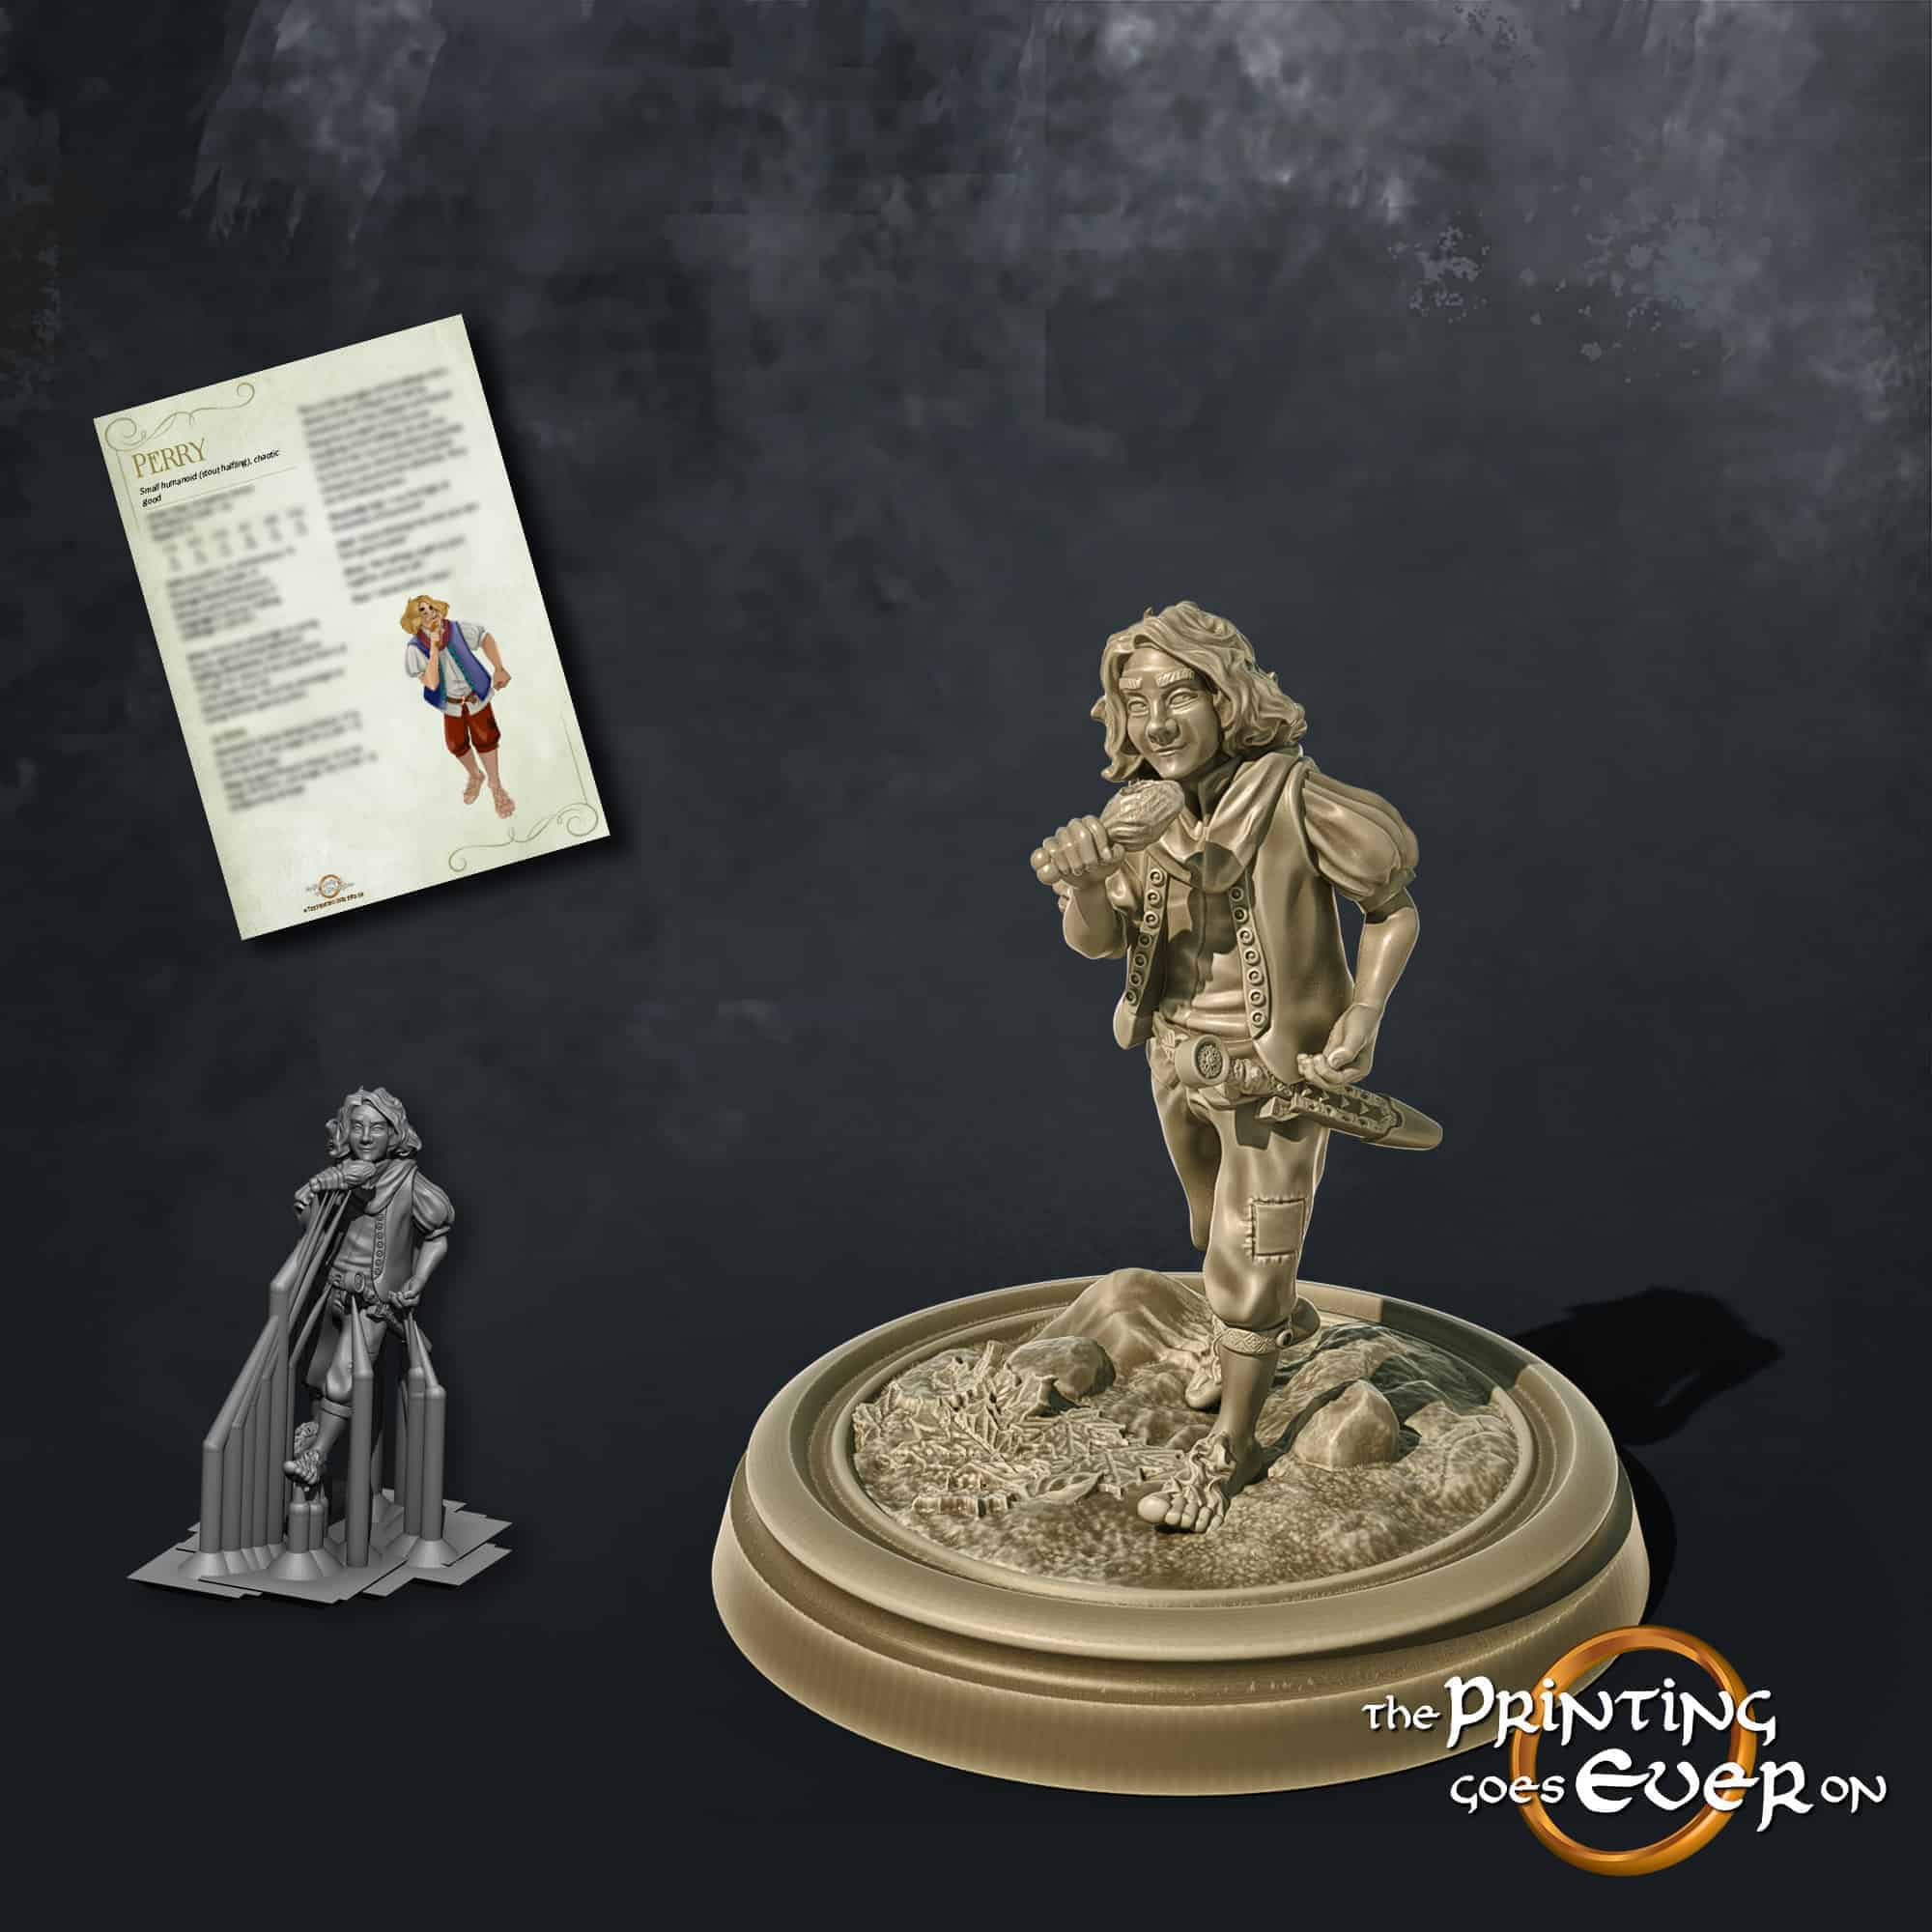 perry halfling adventurer eating 3d printable tabletop miniature from the printing goes ever on patreon welcome trove